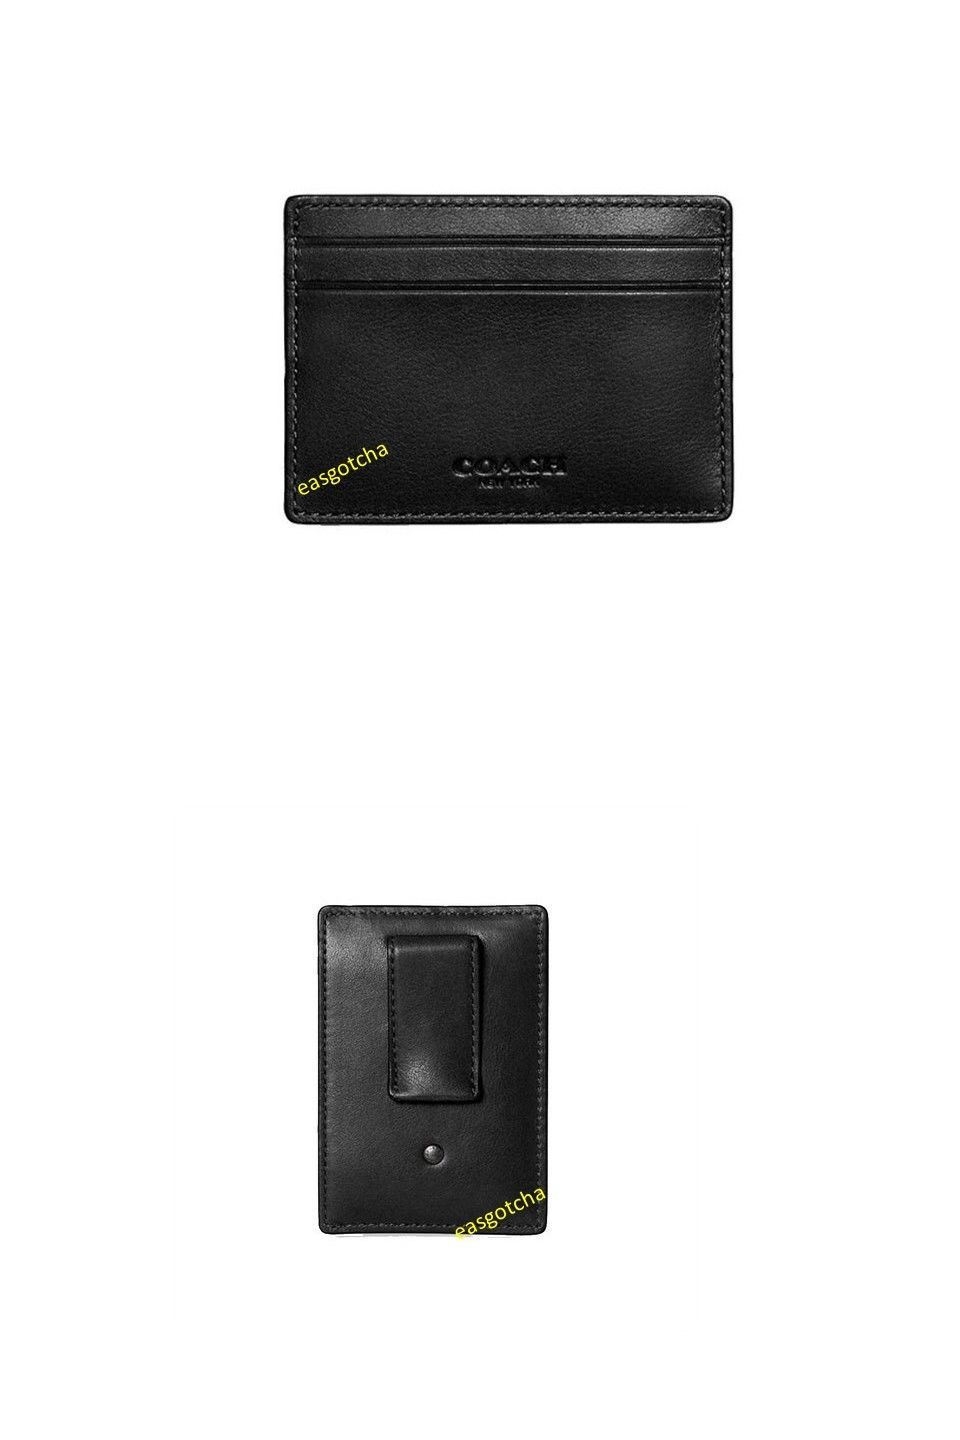 f7e8d12a372 Business and Credit Card Cases 105860  Coach F75459 Money Black Clip Card  Case Leather